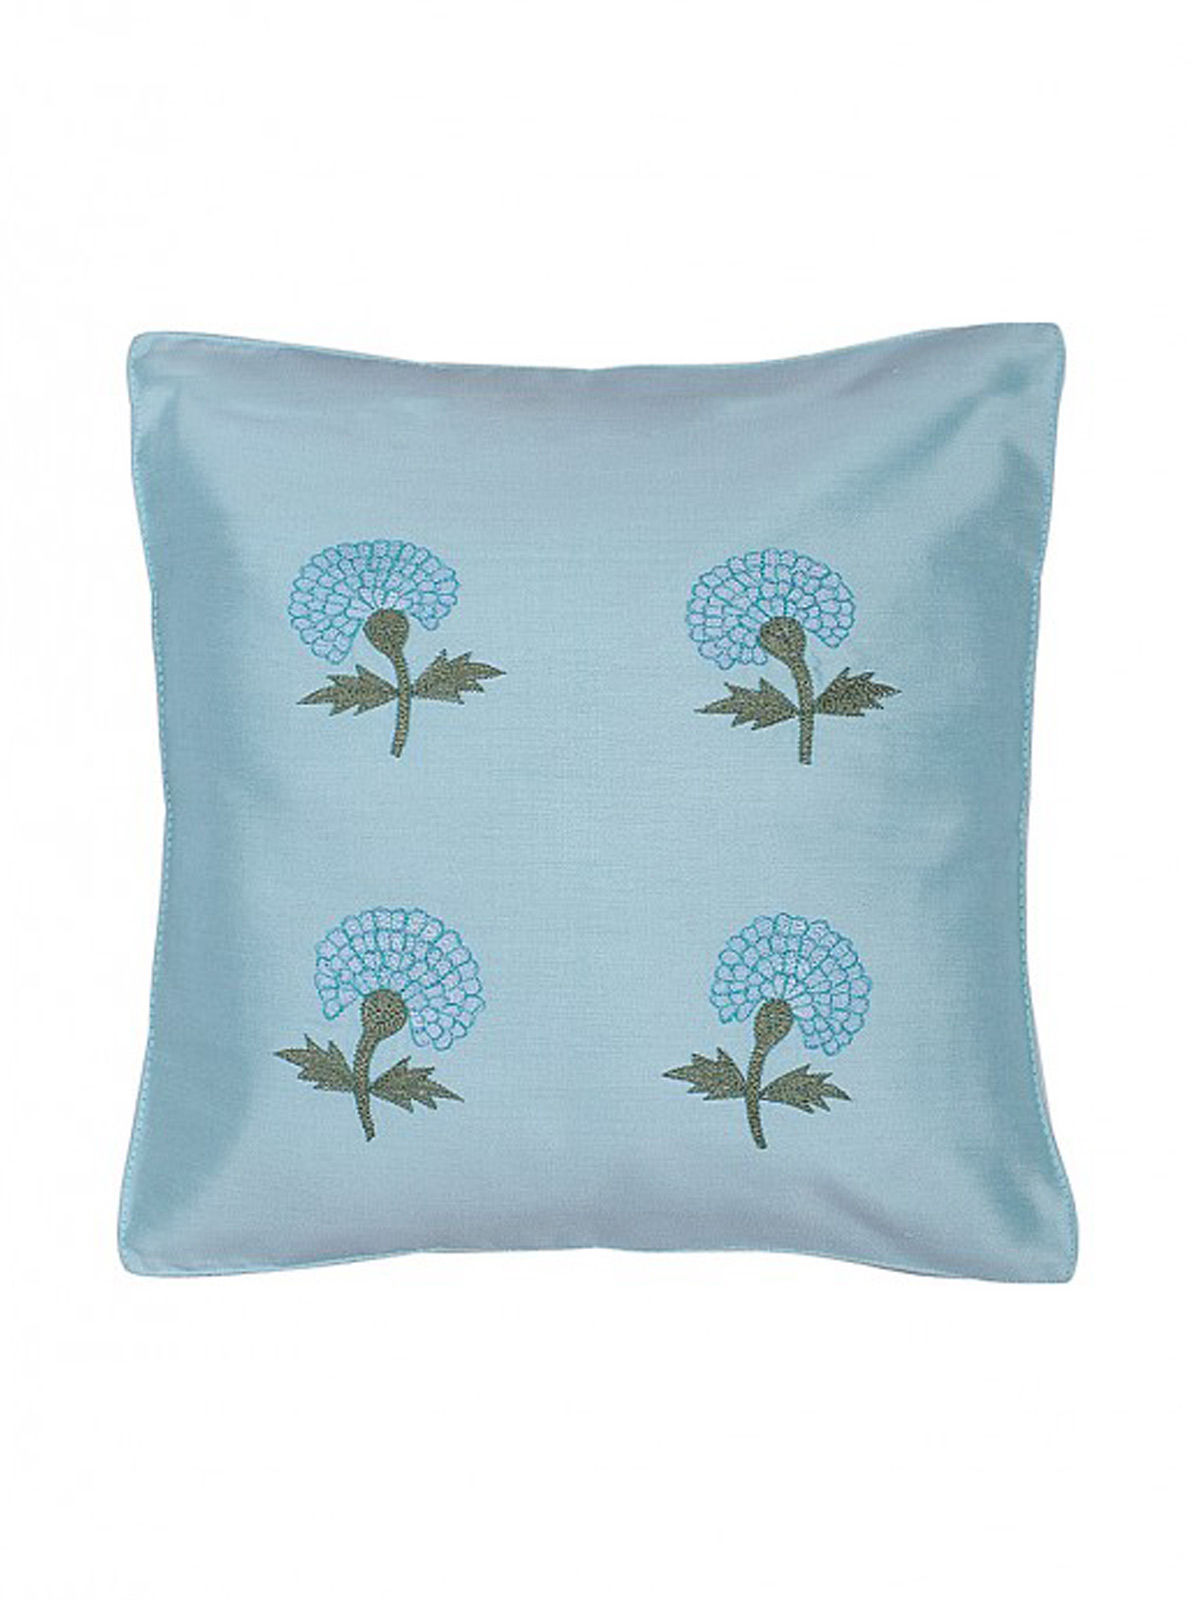 Blue Embroidered Silk Cushion Cover with Marigold Motif